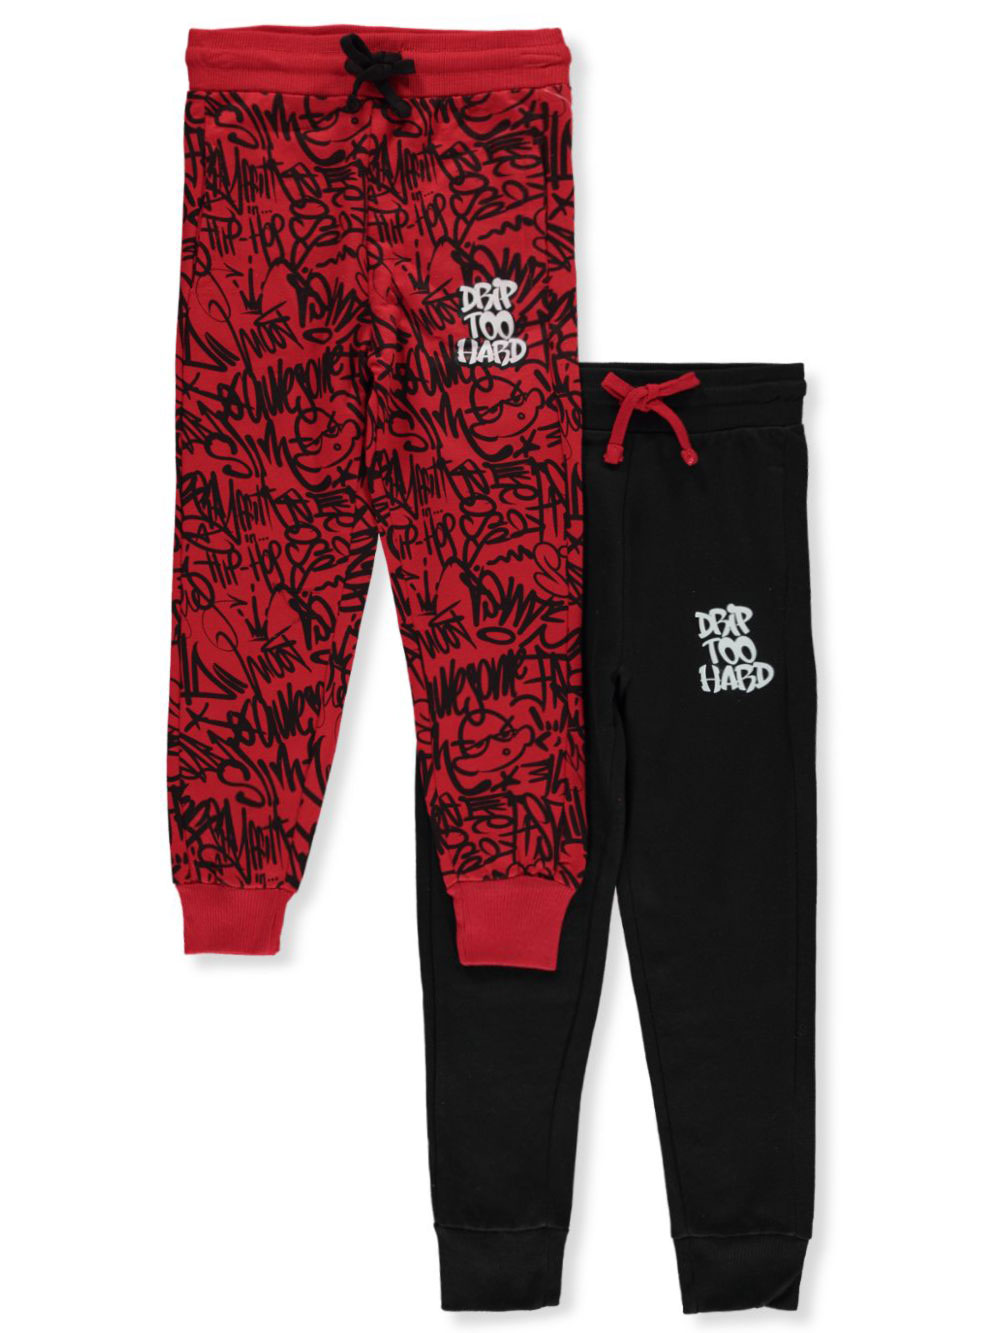 Boys' Drip Too Hard 2-Pack Joggers